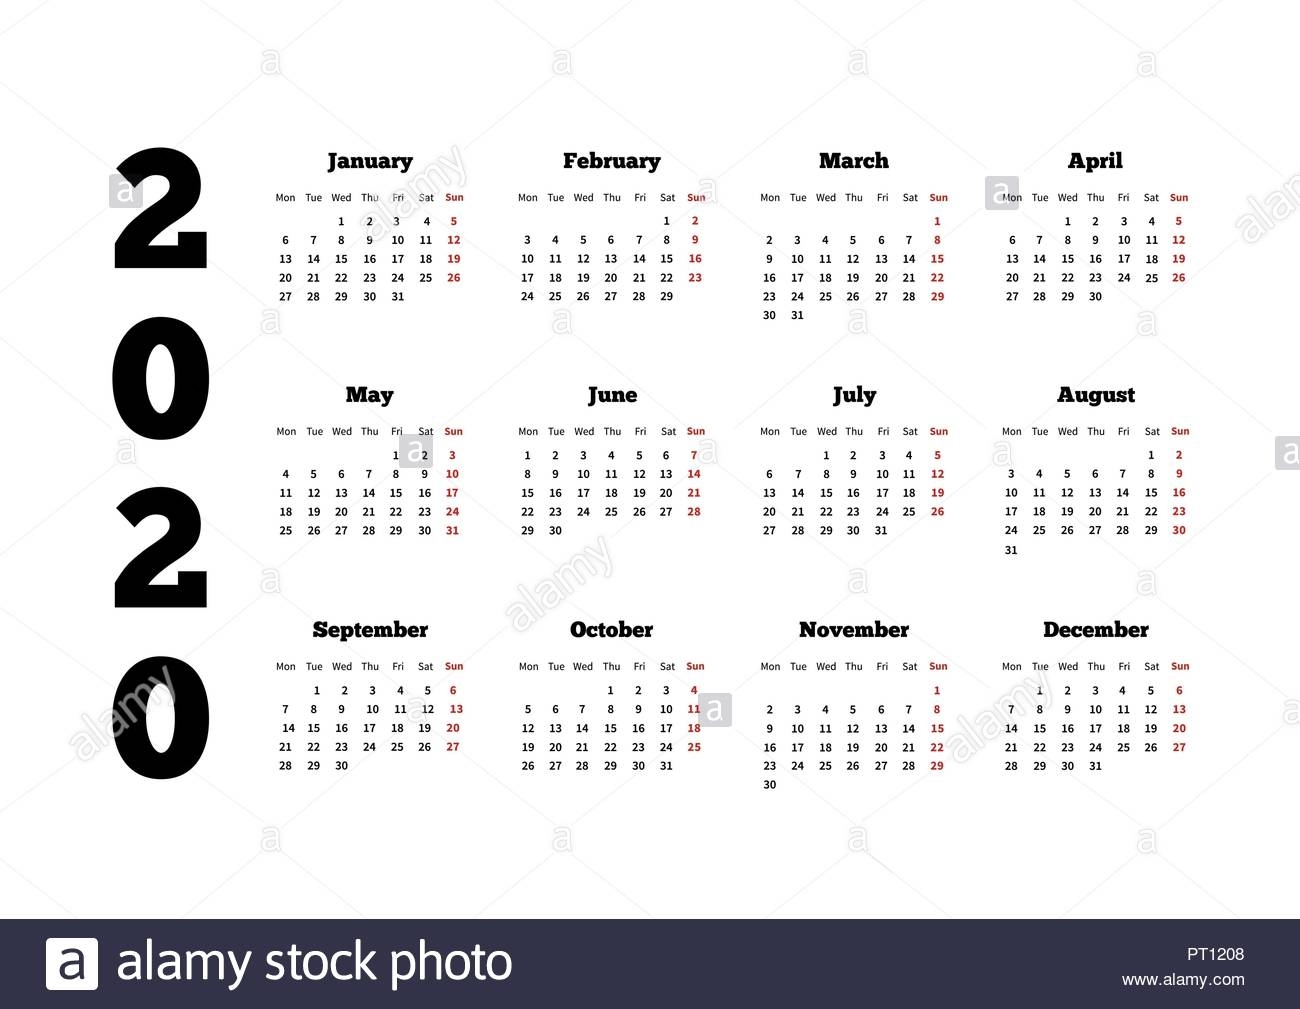 Calendar On 2020 Year With Week Starting From Monday, A4 pertaining to 2020 Calendar Starting On Moday